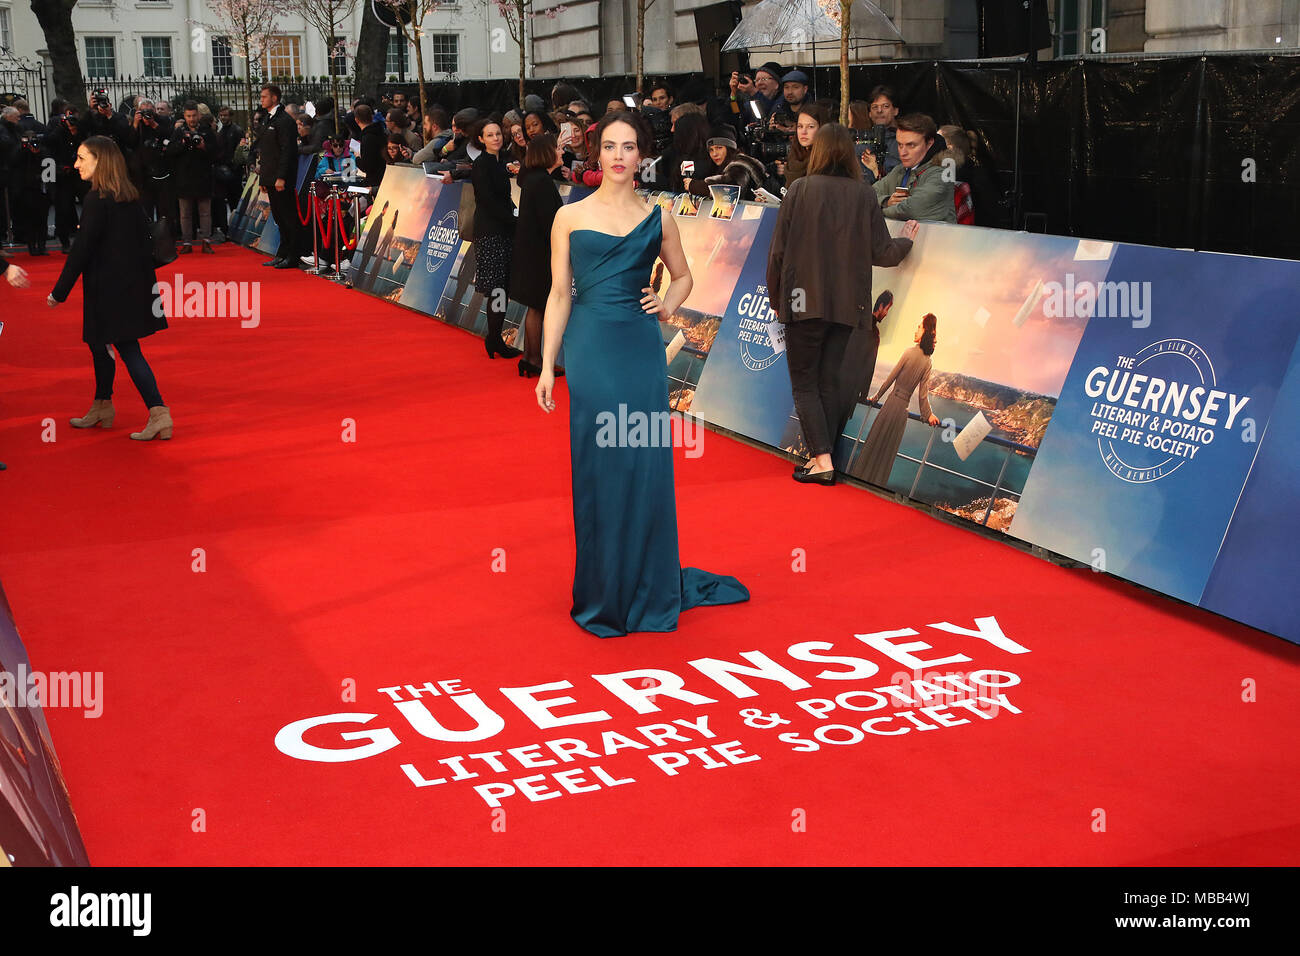 London, UK. 9th Apr, 2018. Jessica Brown Findlay, The Guernsey Literary and Potato Peel Pie Society - World Premiere, Curzon Mayfair, London UK, 09 April 2018, Photo by Richard Goldschmidt Credit: Rich Gold/Alamy Live News Stock Photo